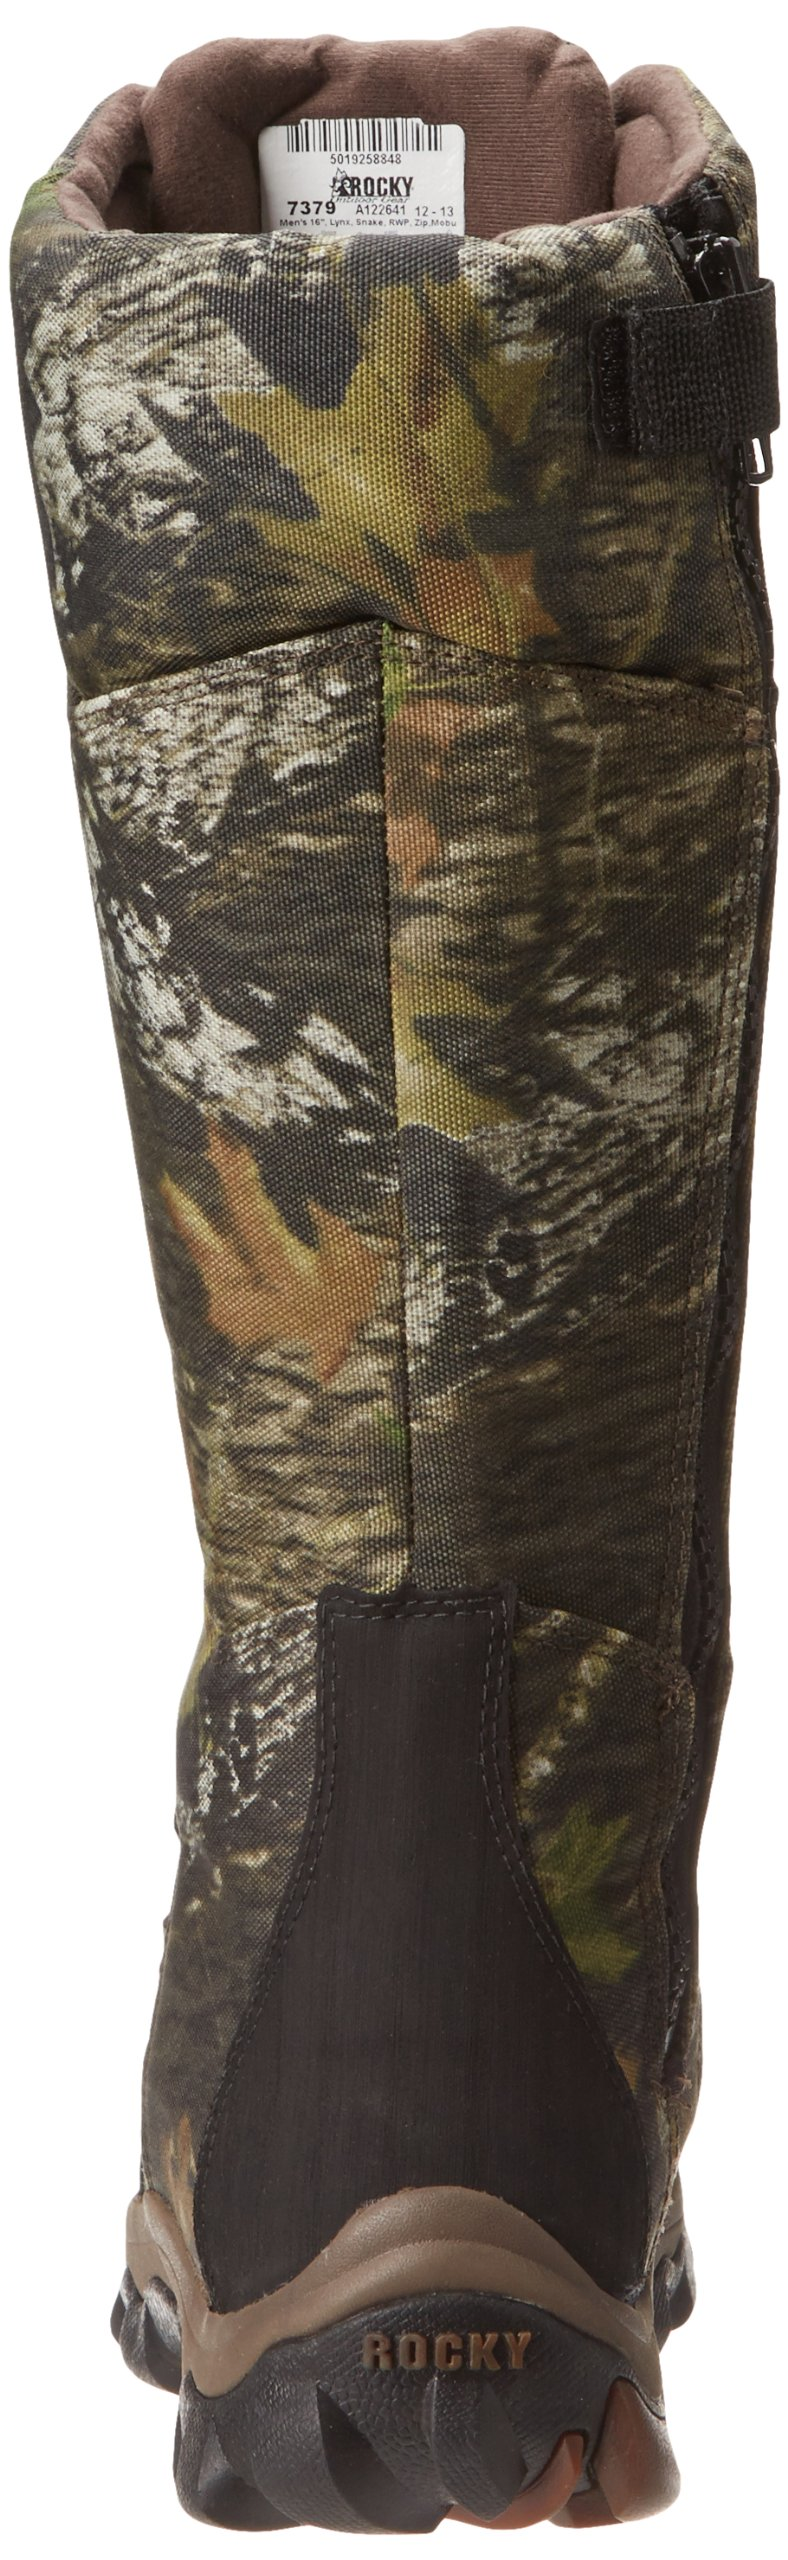 Rocky Men's Lynx Snake Boot Hunting Boot,Mobu,10 M US by Rocky (Image #2)